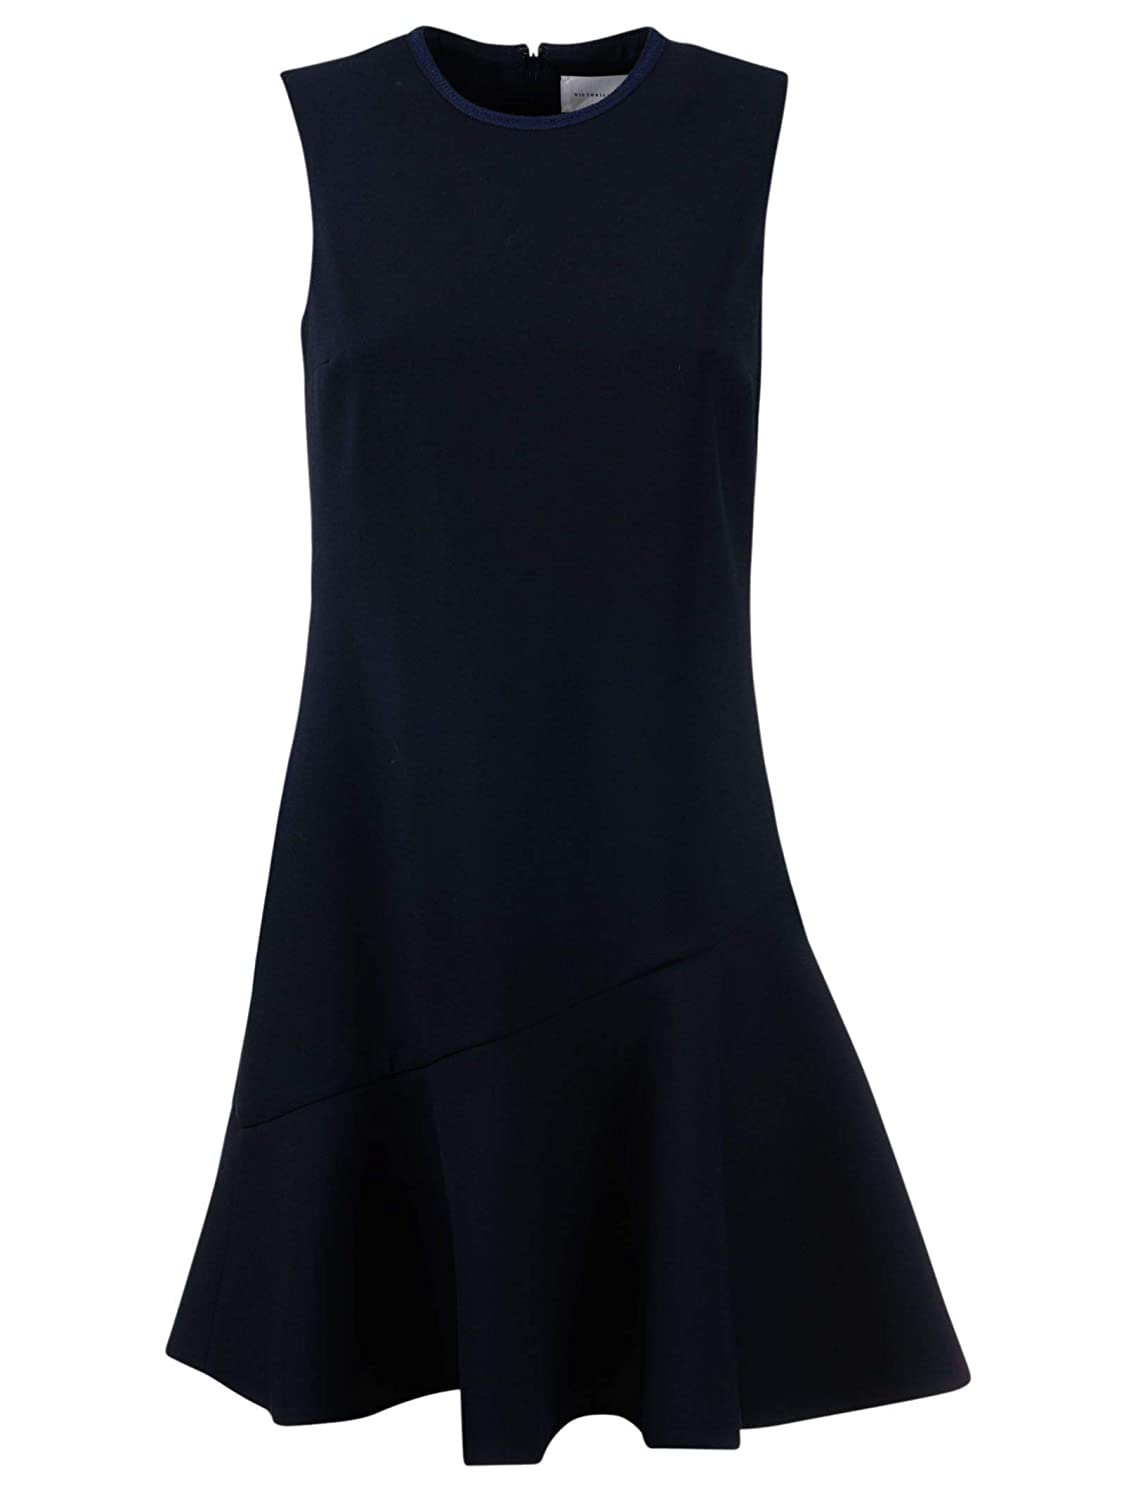 Victoria Beckham Women's DRVV552MIDNIGHT Black Polyester Dress